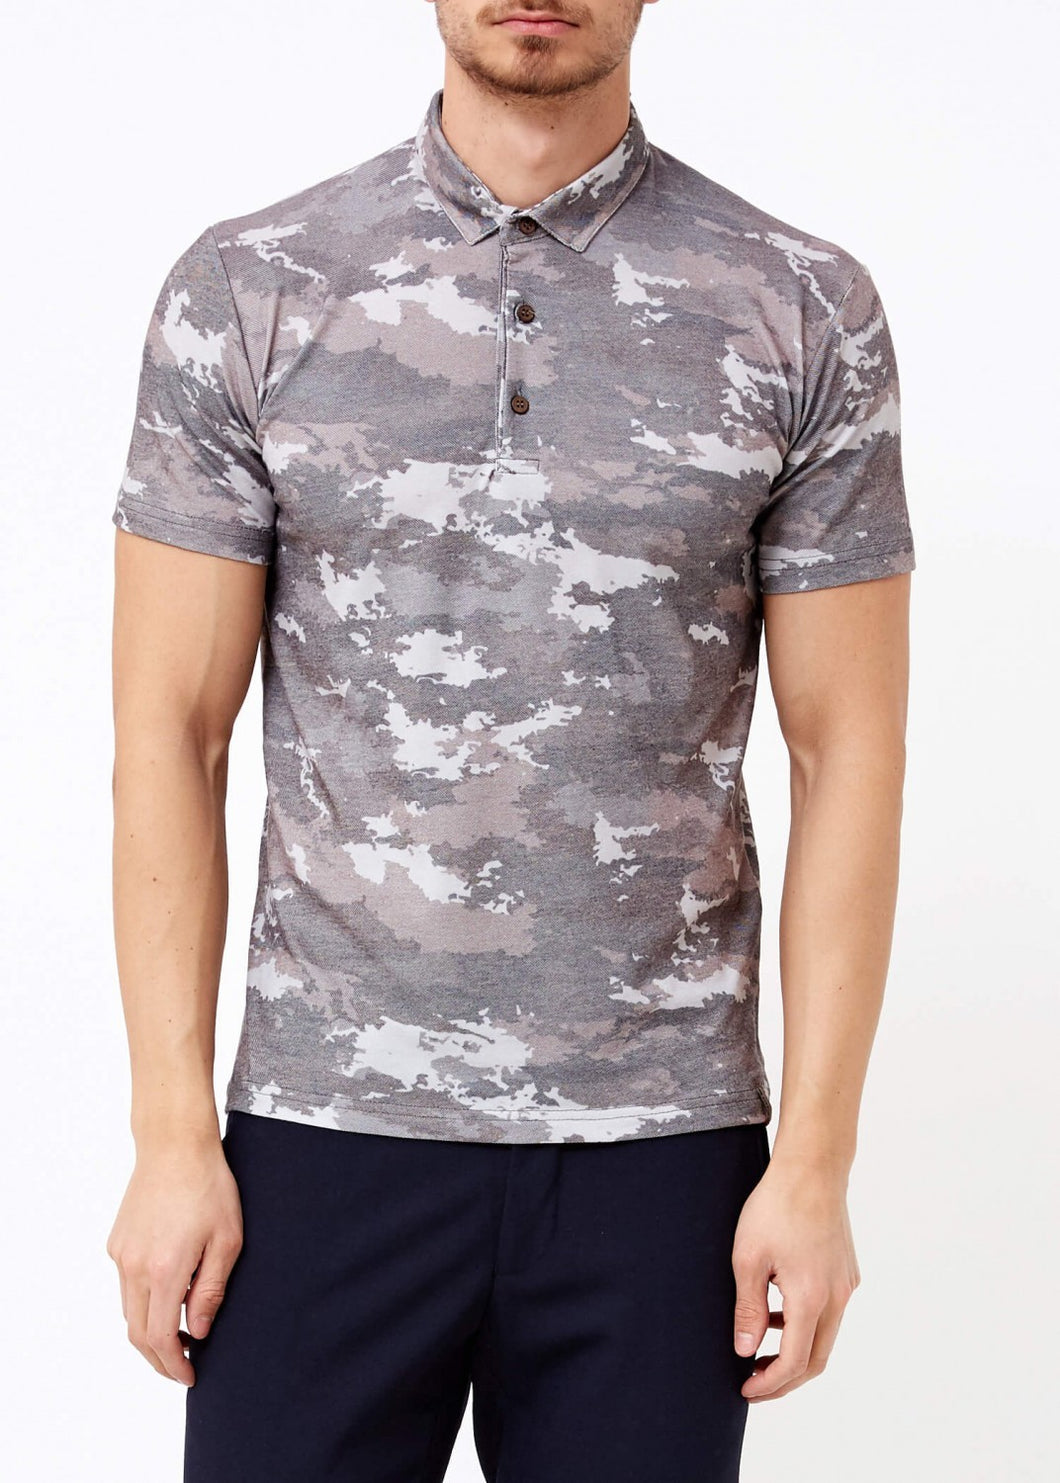 Men's Grey T-Shirt